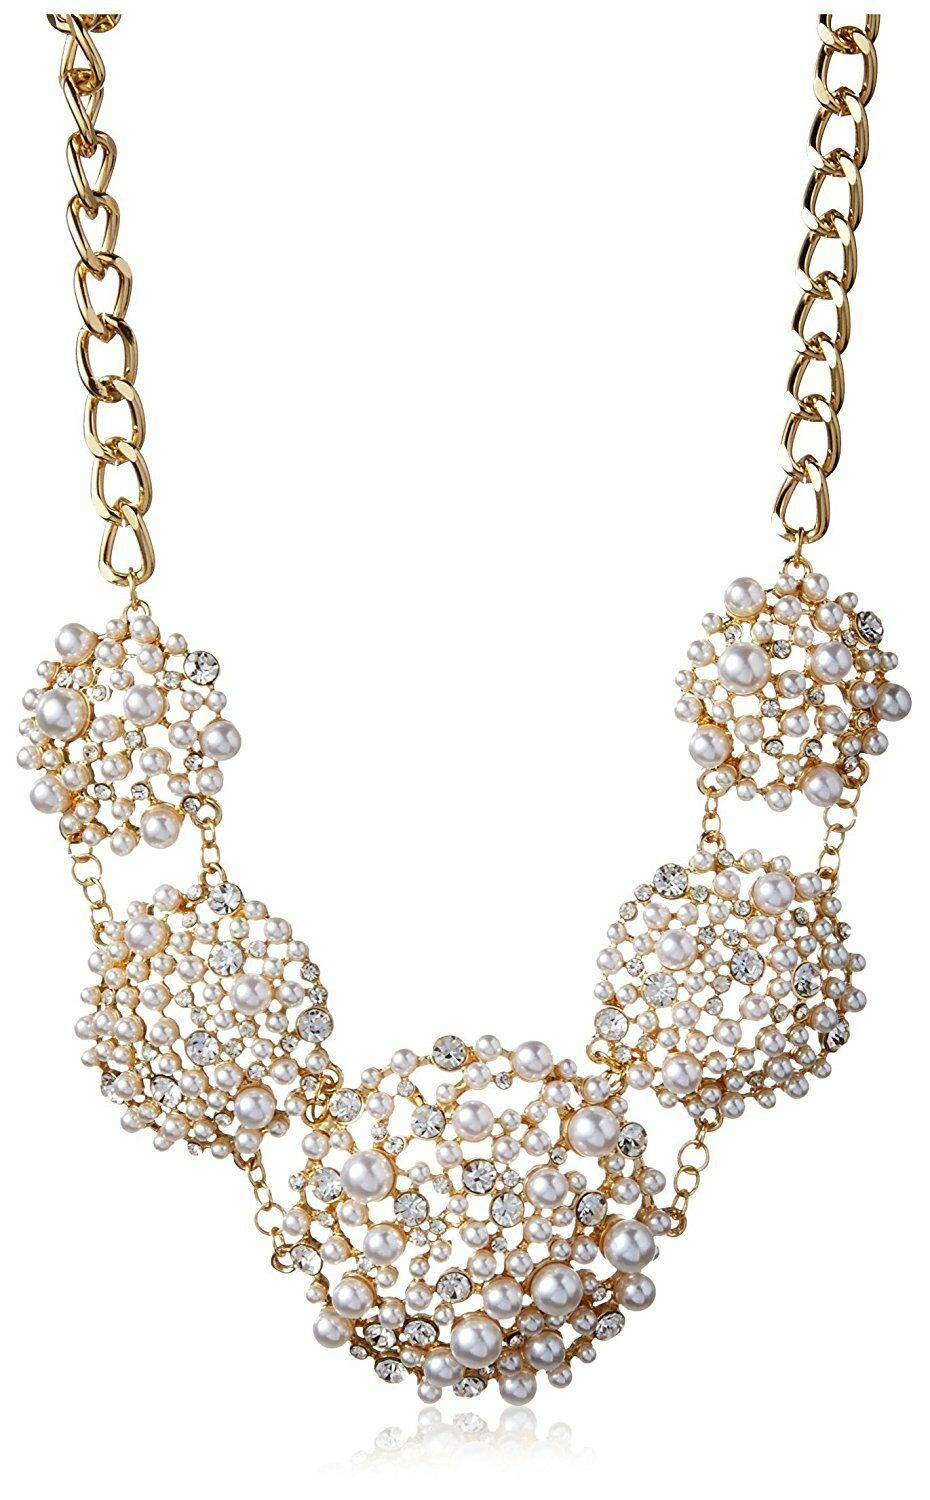 Cohesive Jewels Floral Simulated Pearl and Swarovski Crystals Statement Necklace